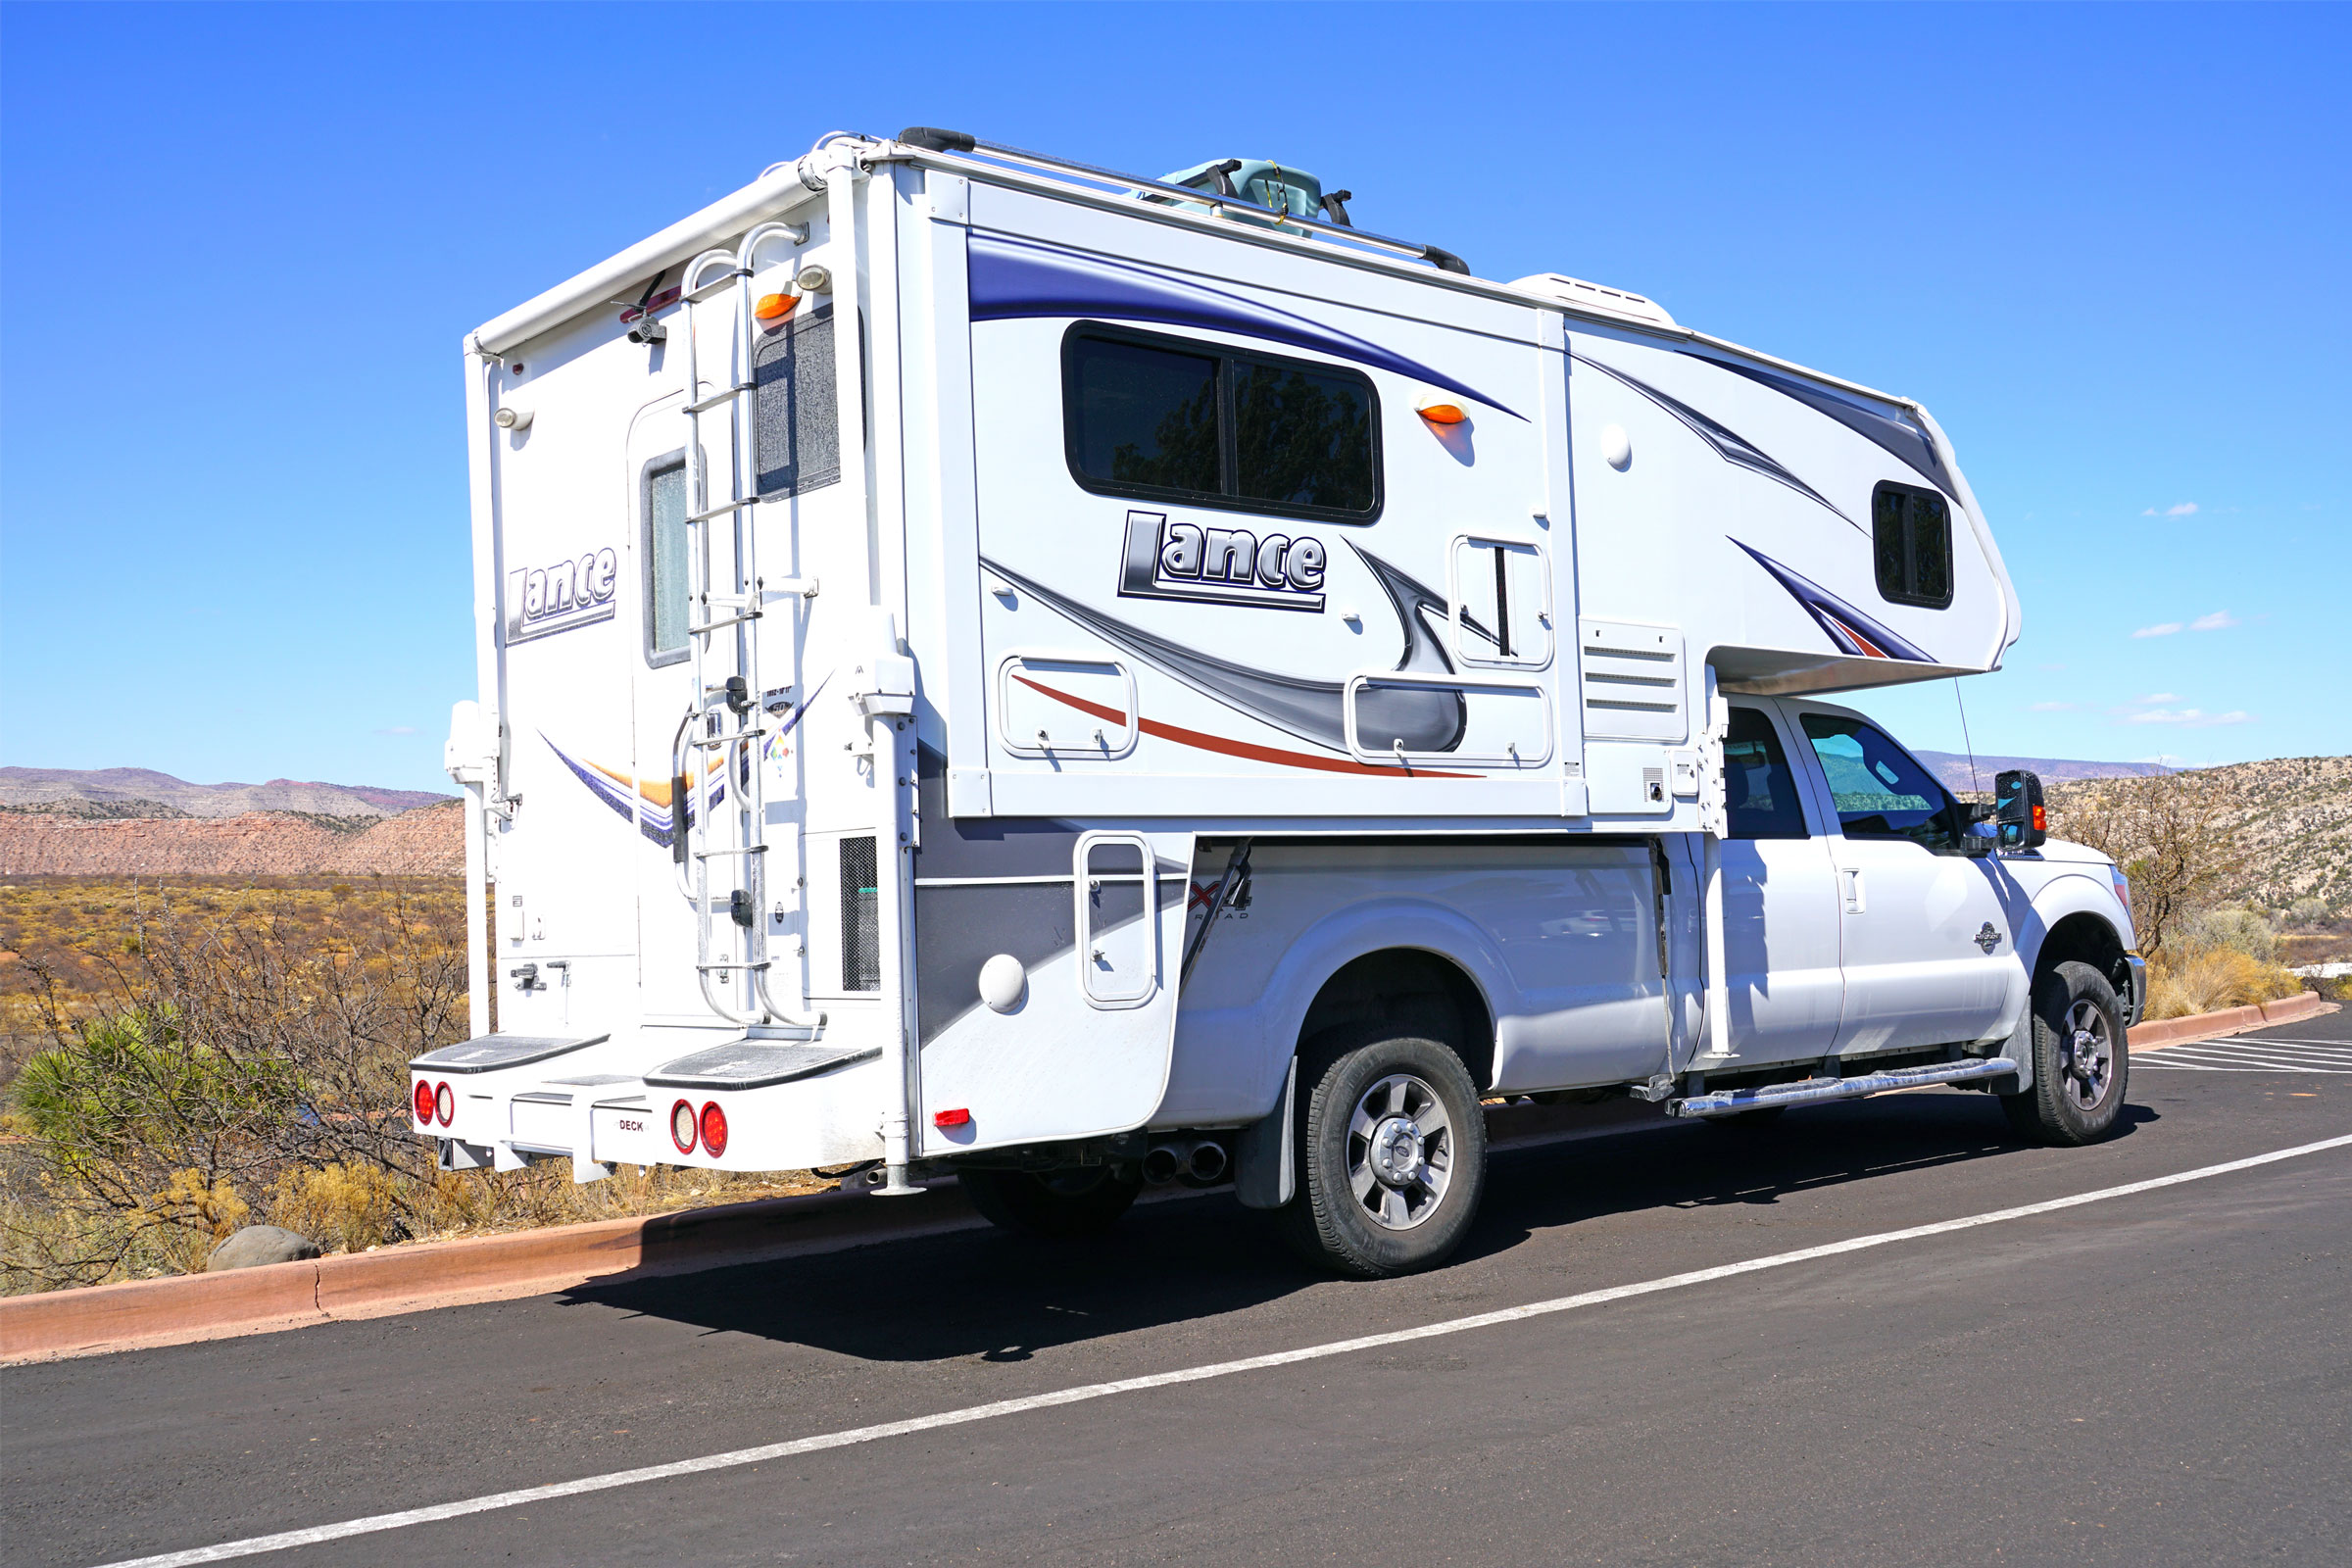 Best Truck Campers of 2021 [Buying Guide]